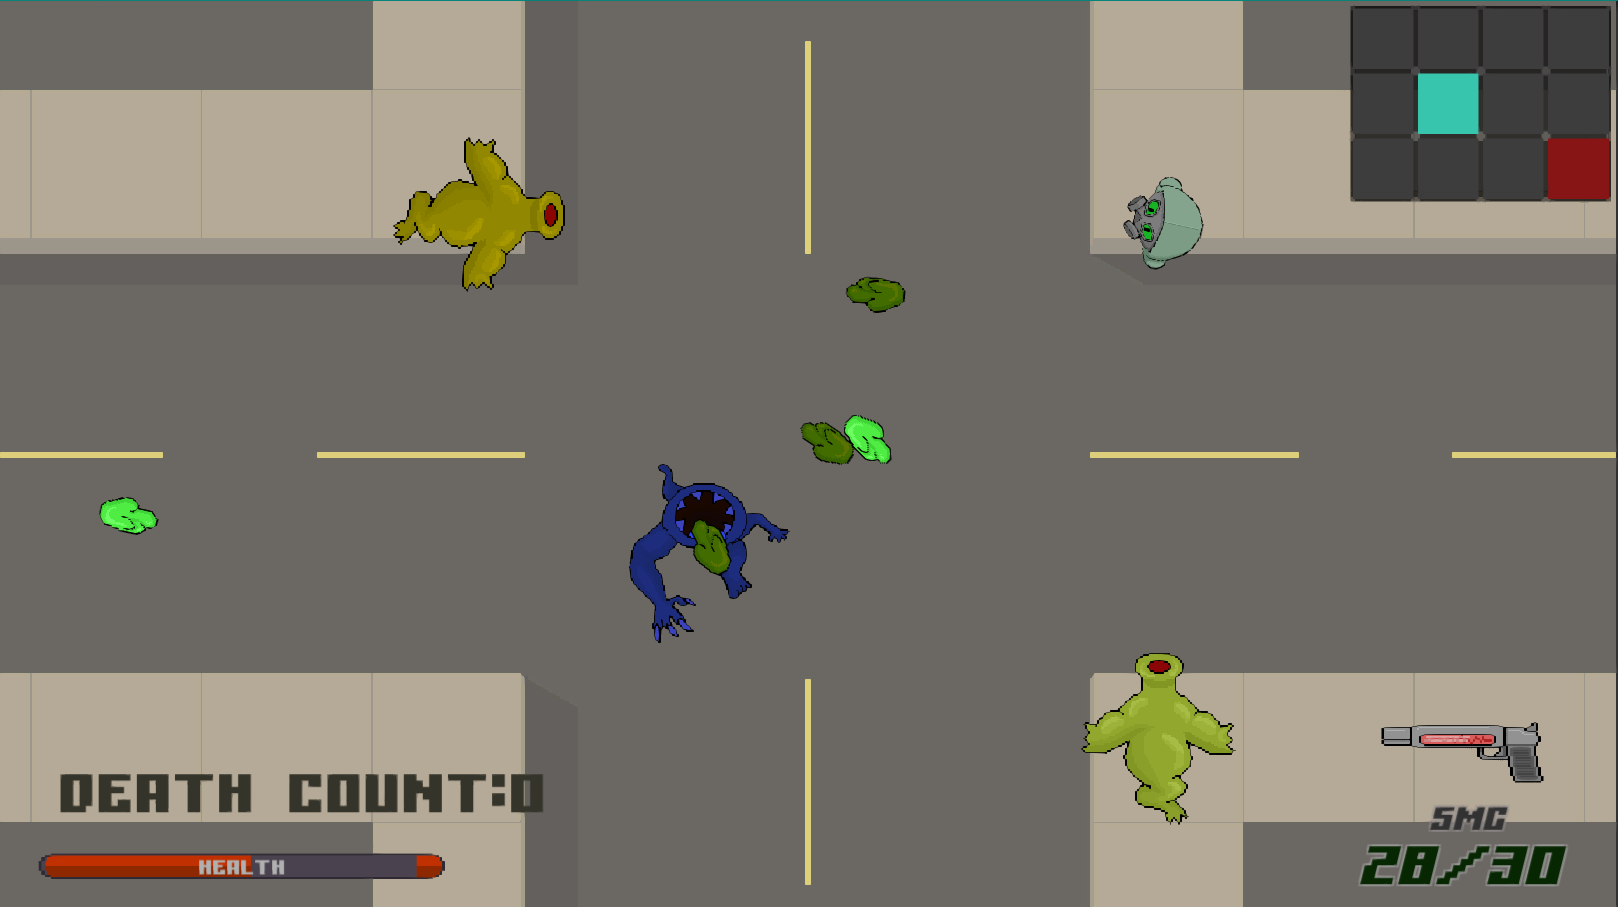 A screenshot of a post-apocalyptic arcade shooter with retro graphics.